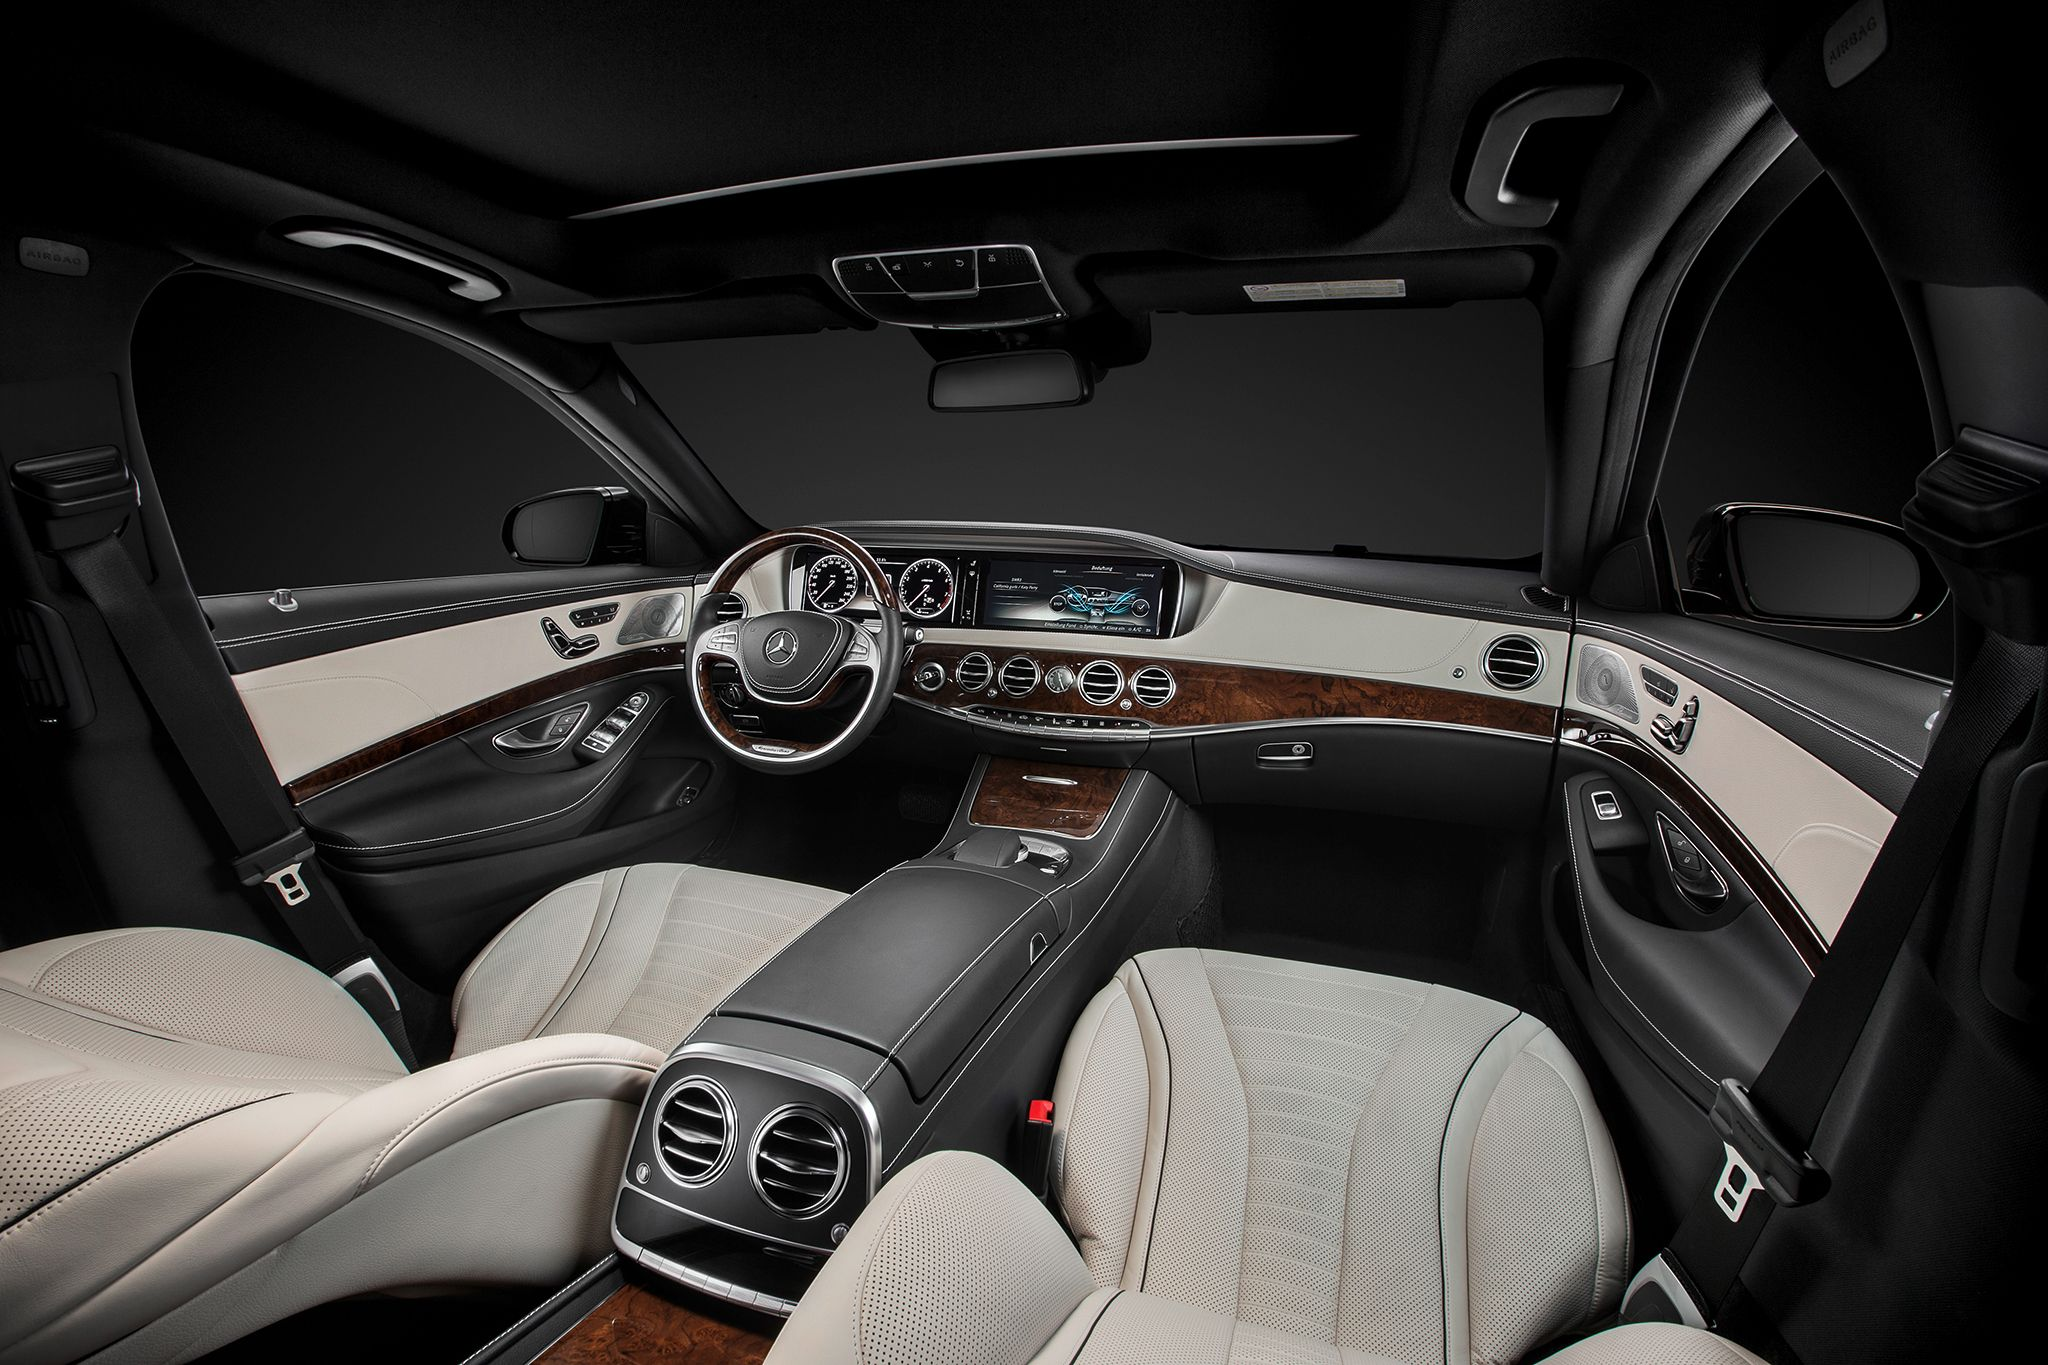 Awesome mercedes a class interior 2013 car images hd 2014 mercedes benz s class interior sense the car